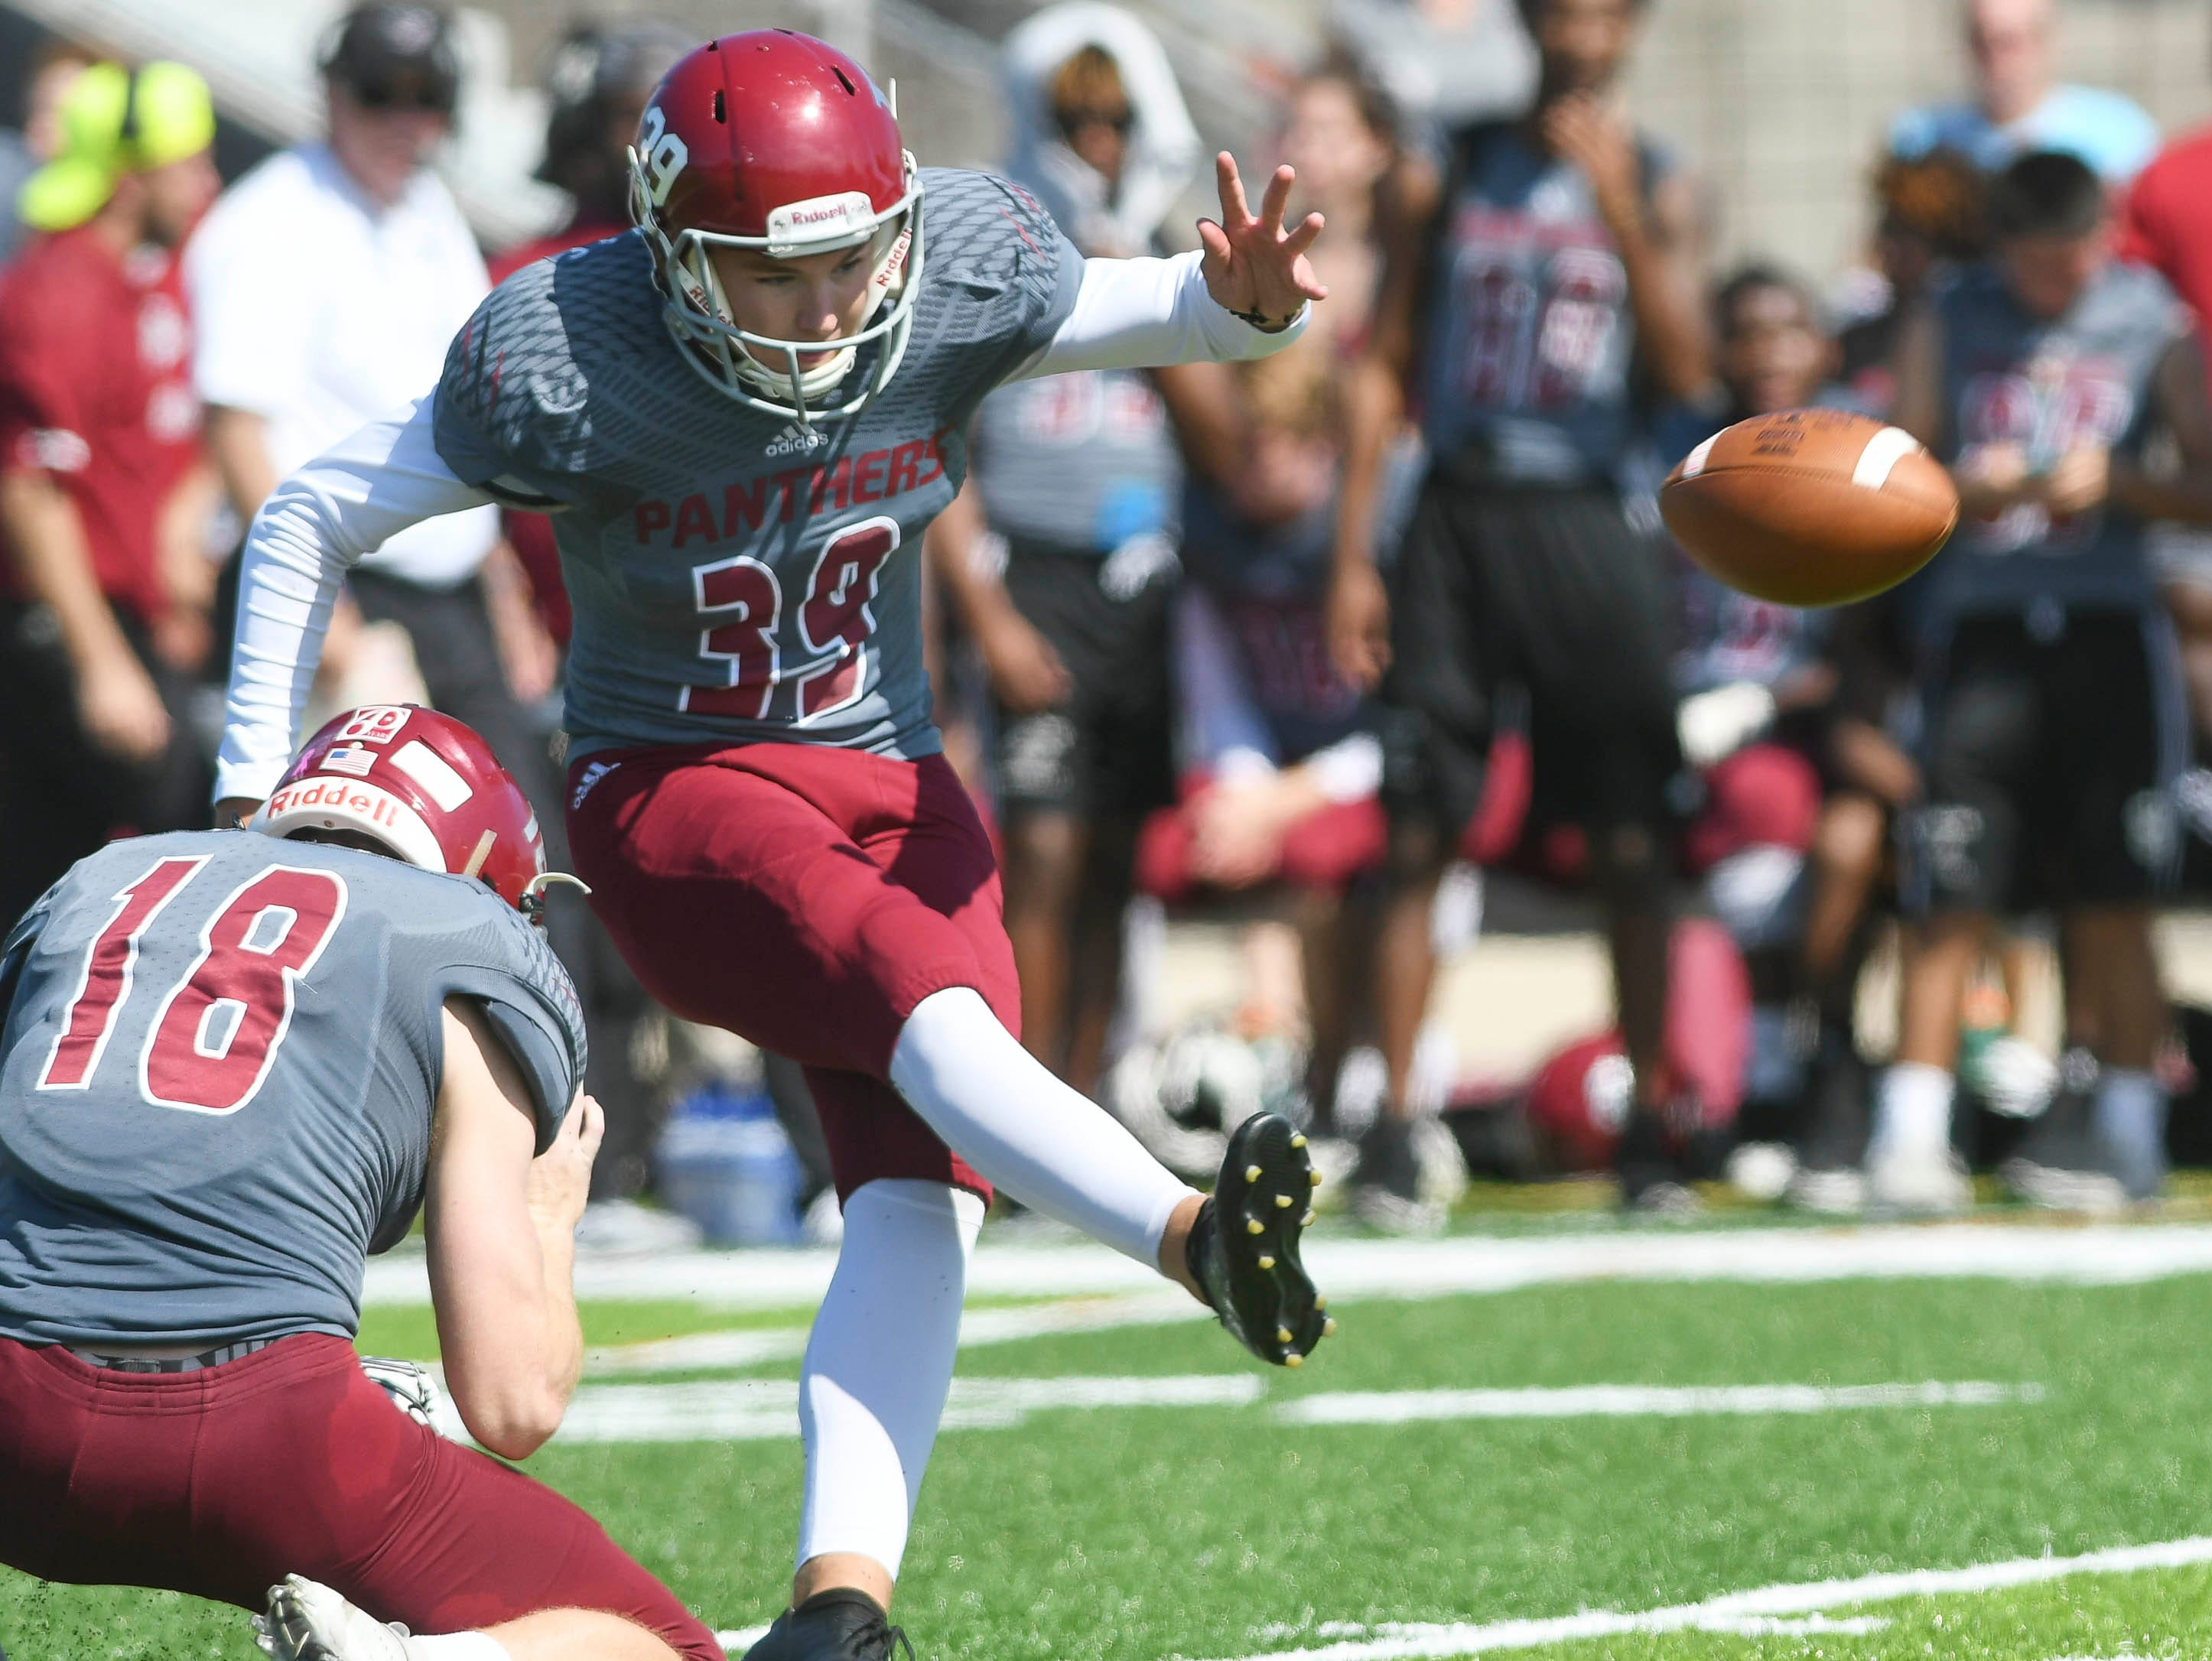 Kyle Gullikson attempts a field goal during Saturday's game against Valdosta State..